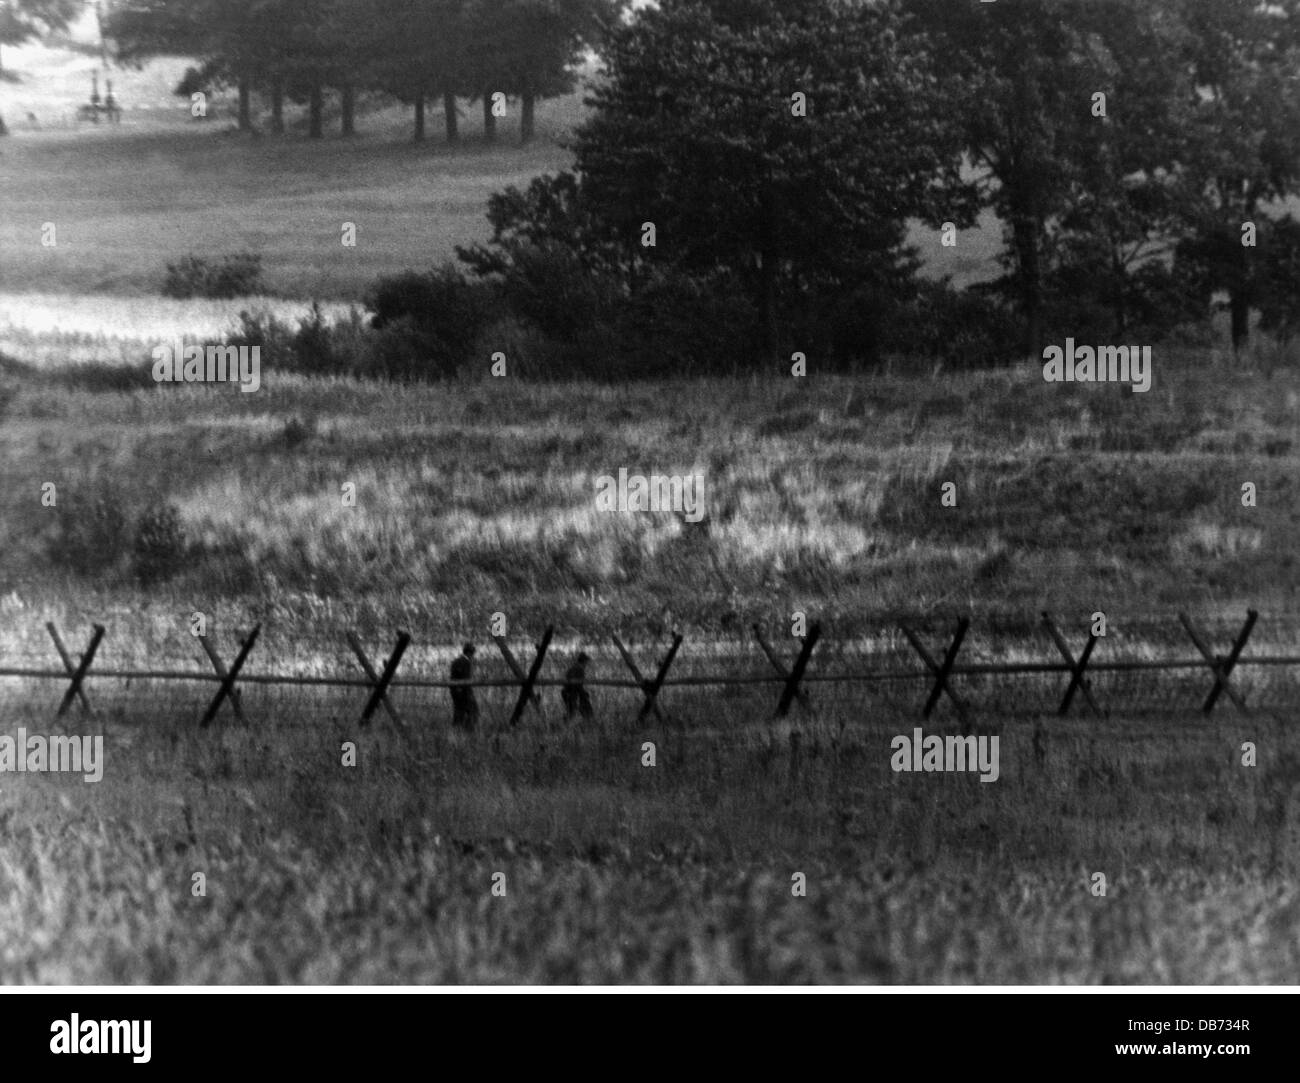 geography / travel, Germany, borders, inner German border, barbed-wire entanglement, East-Germany, 1960s, Additional - Stock Image